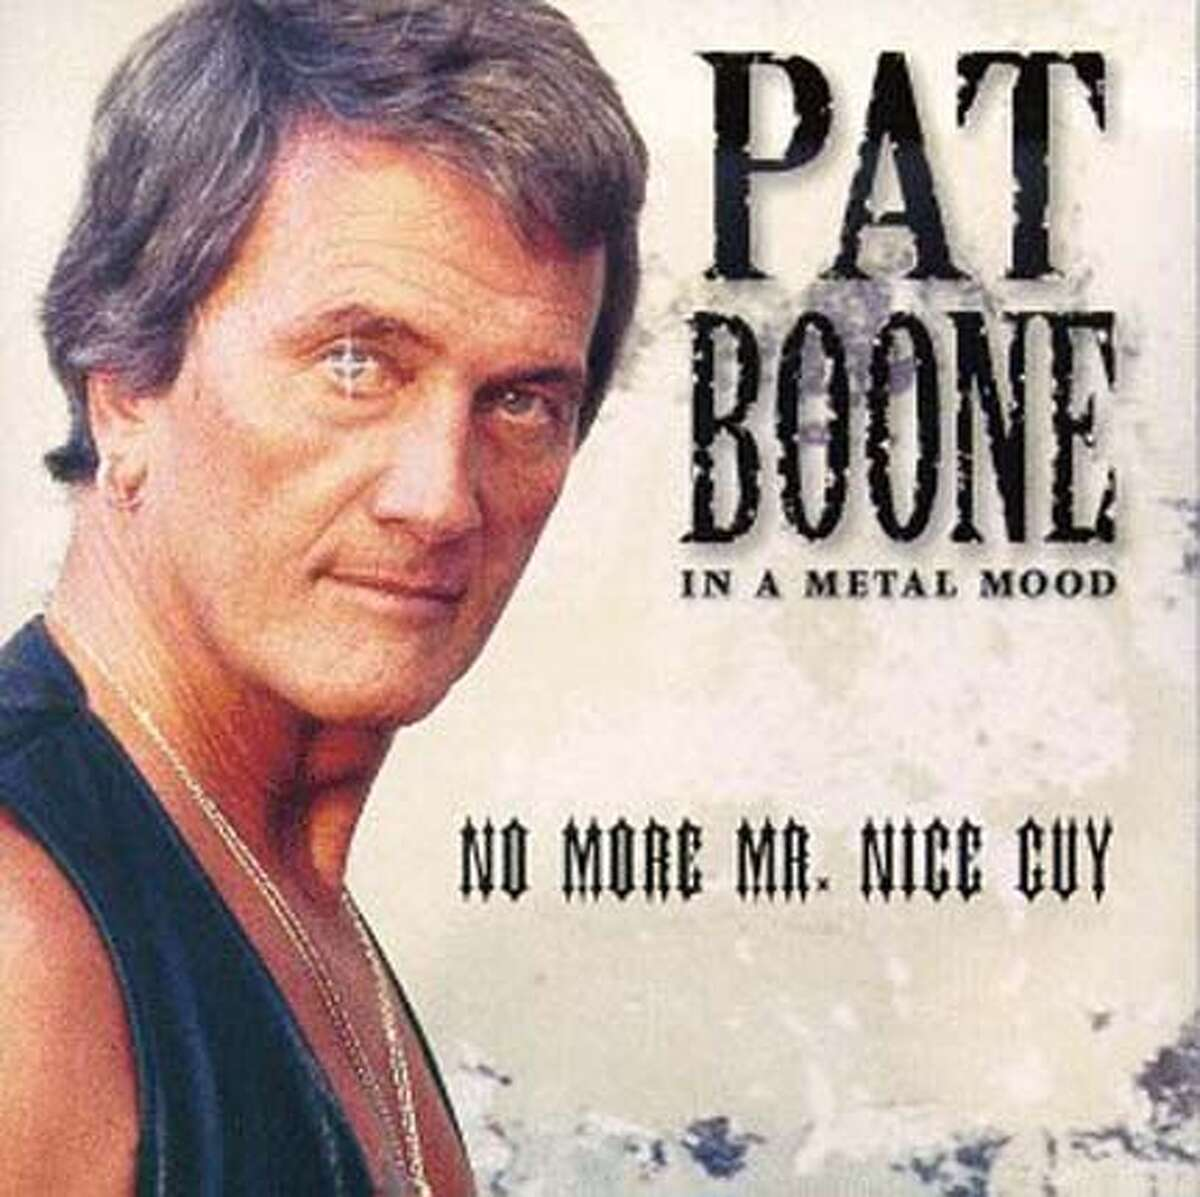 Pat Boone's metal album is really kind of a classic. Here he croons Guns N' Roses'